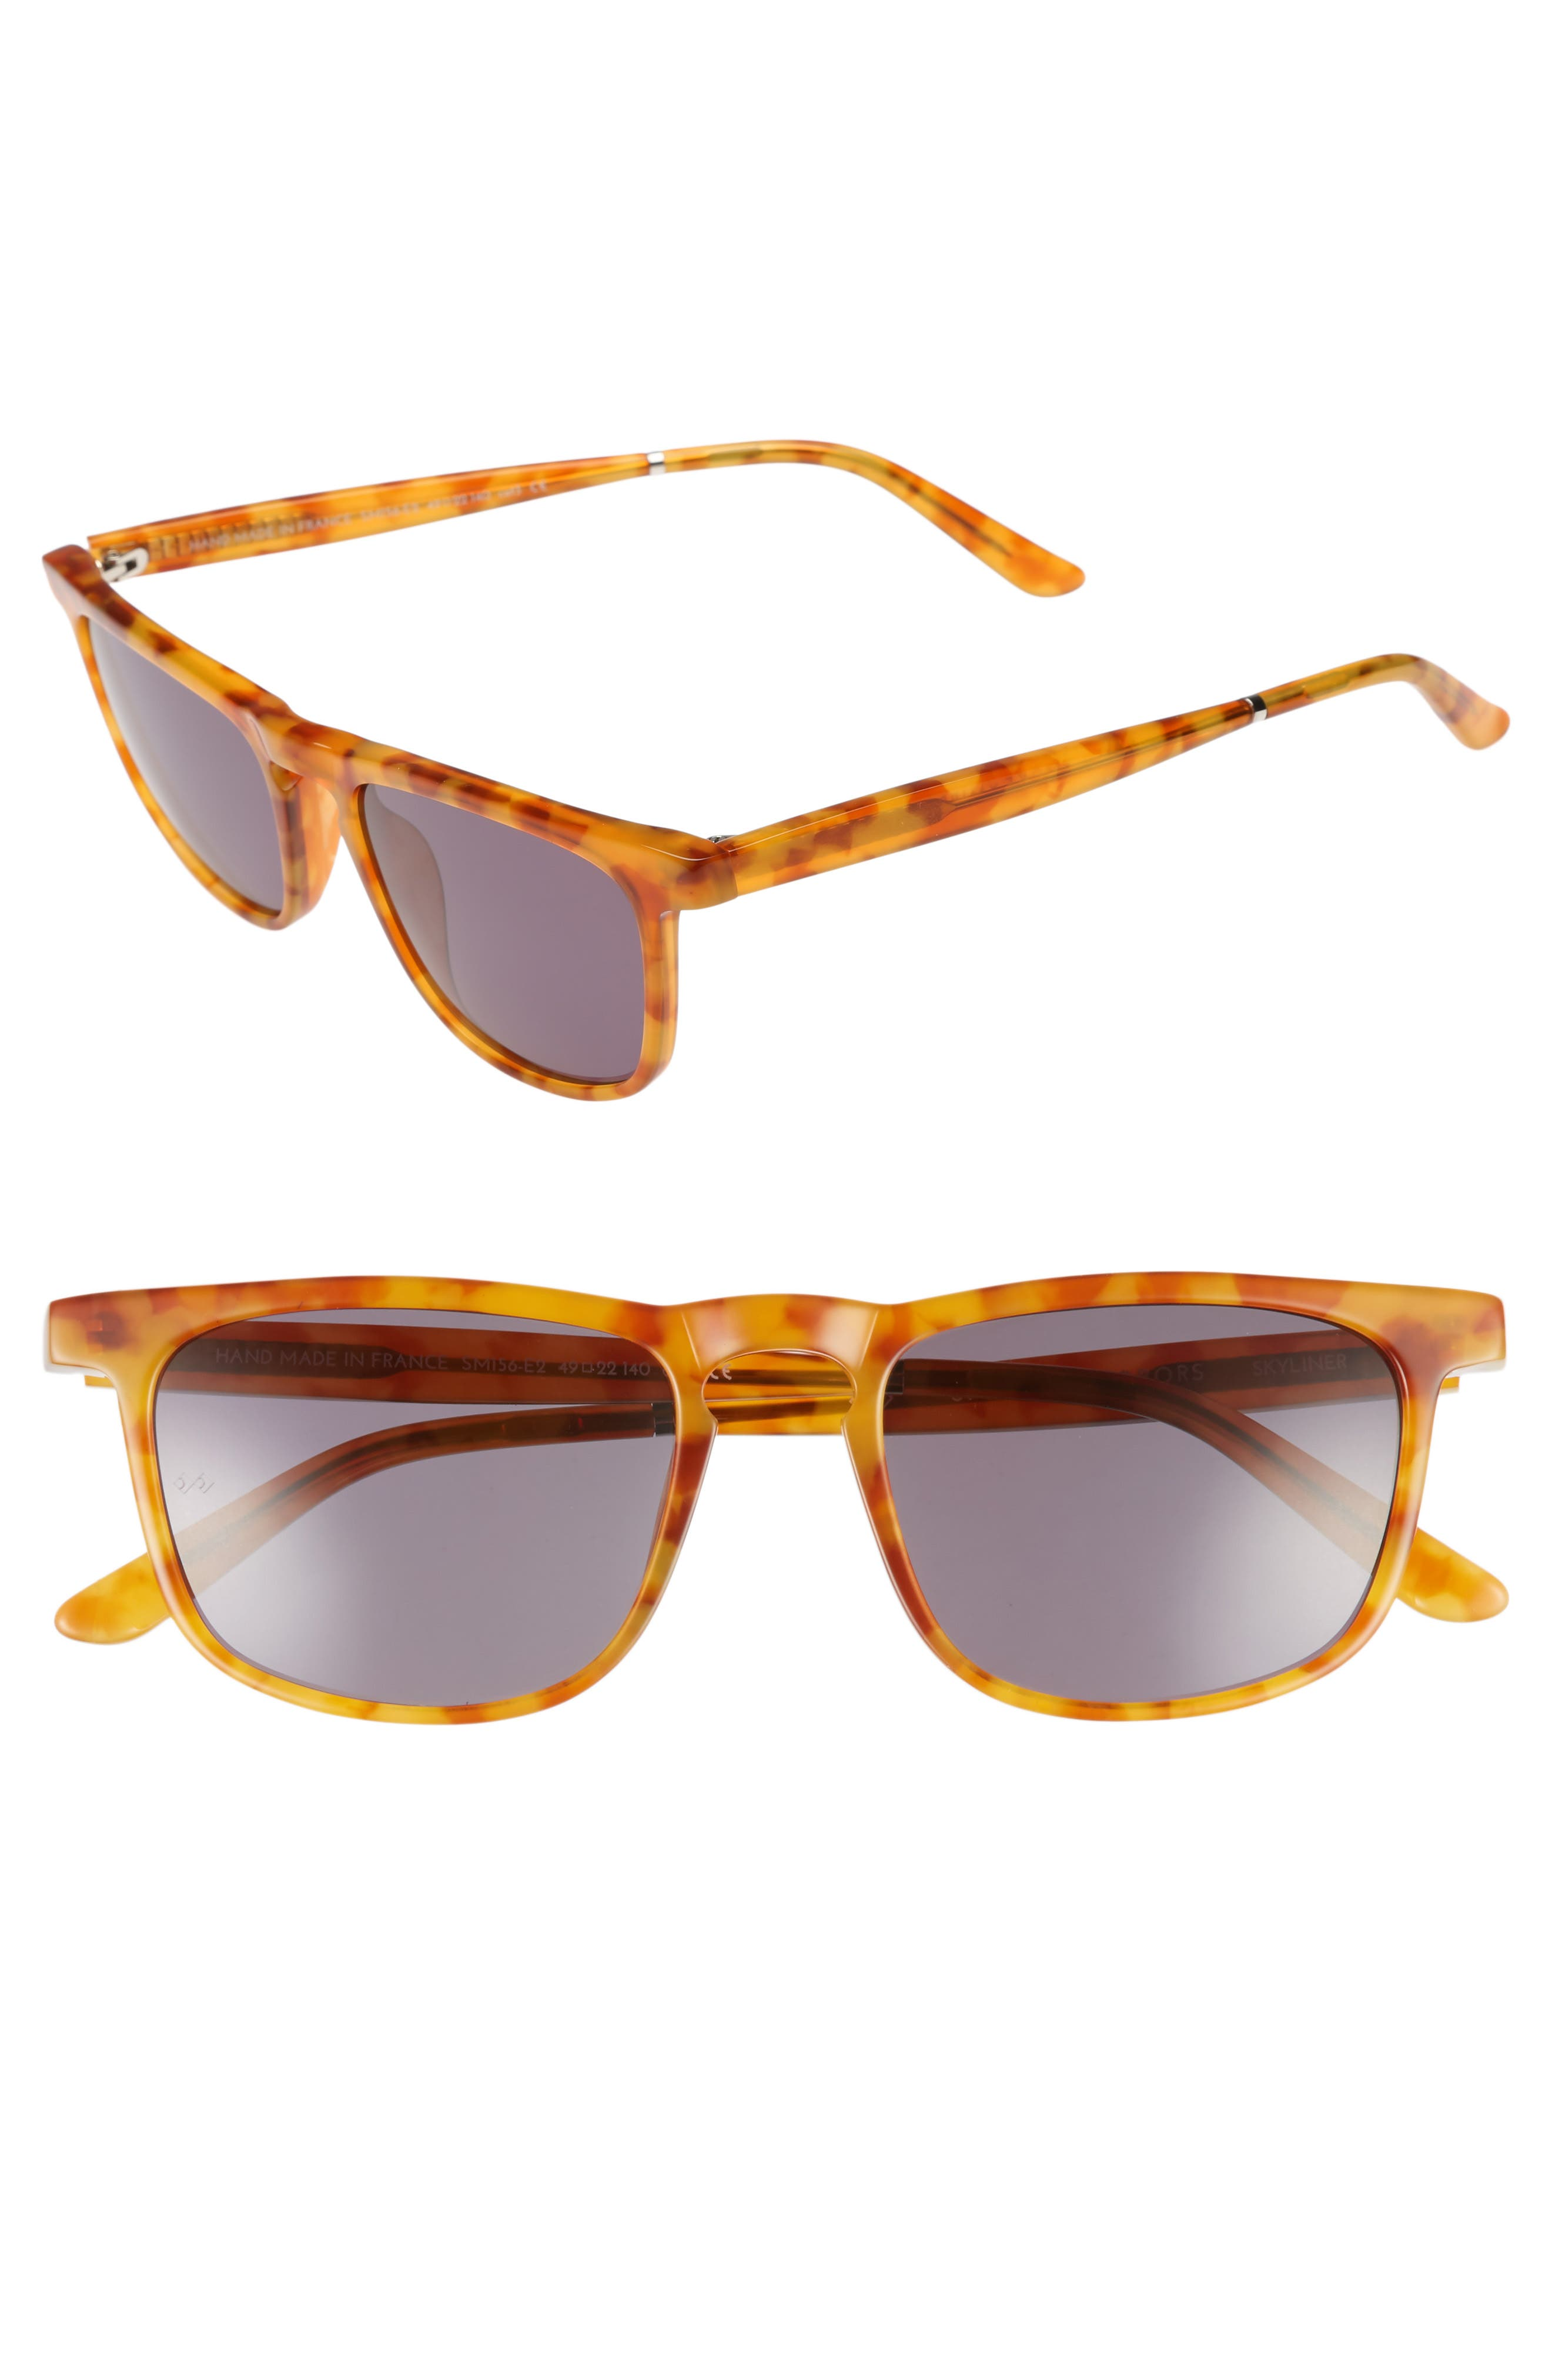 Skyliner 49mm Sunglasses,                             Main thumbnail 1, color,